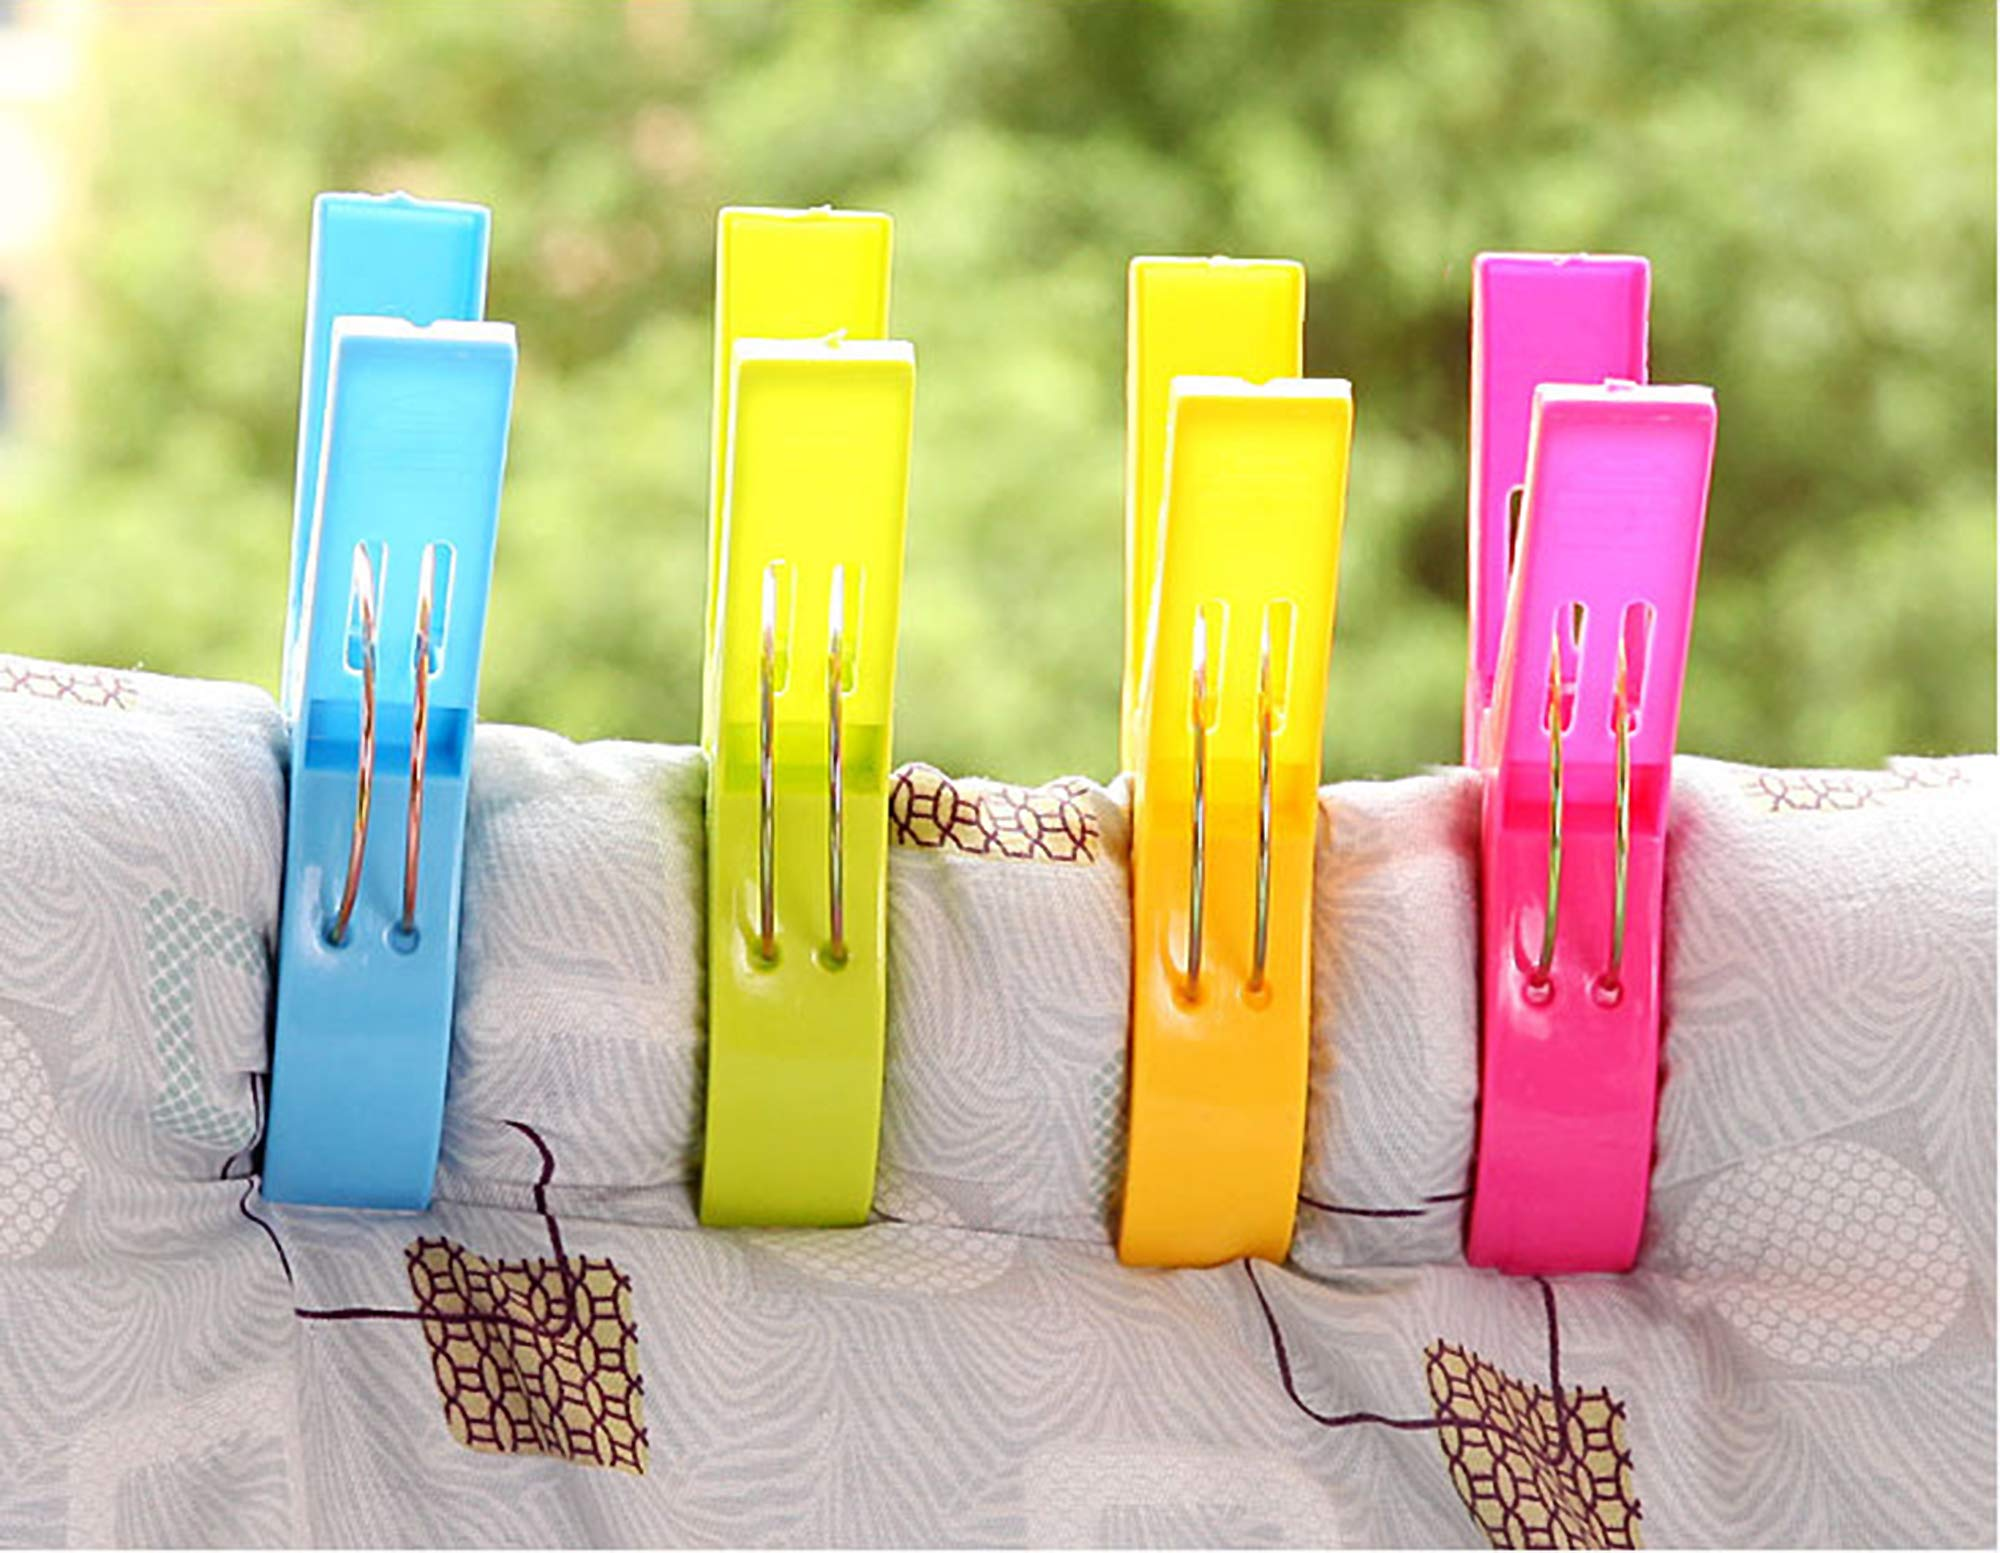 Lazyaunti 4 Pack Clothespins Beach Towel Clips Plastic Clothes Pegs Chair Clips Towel Holder for Pool Chairs Hanging Clip Clamps for Home and Travel